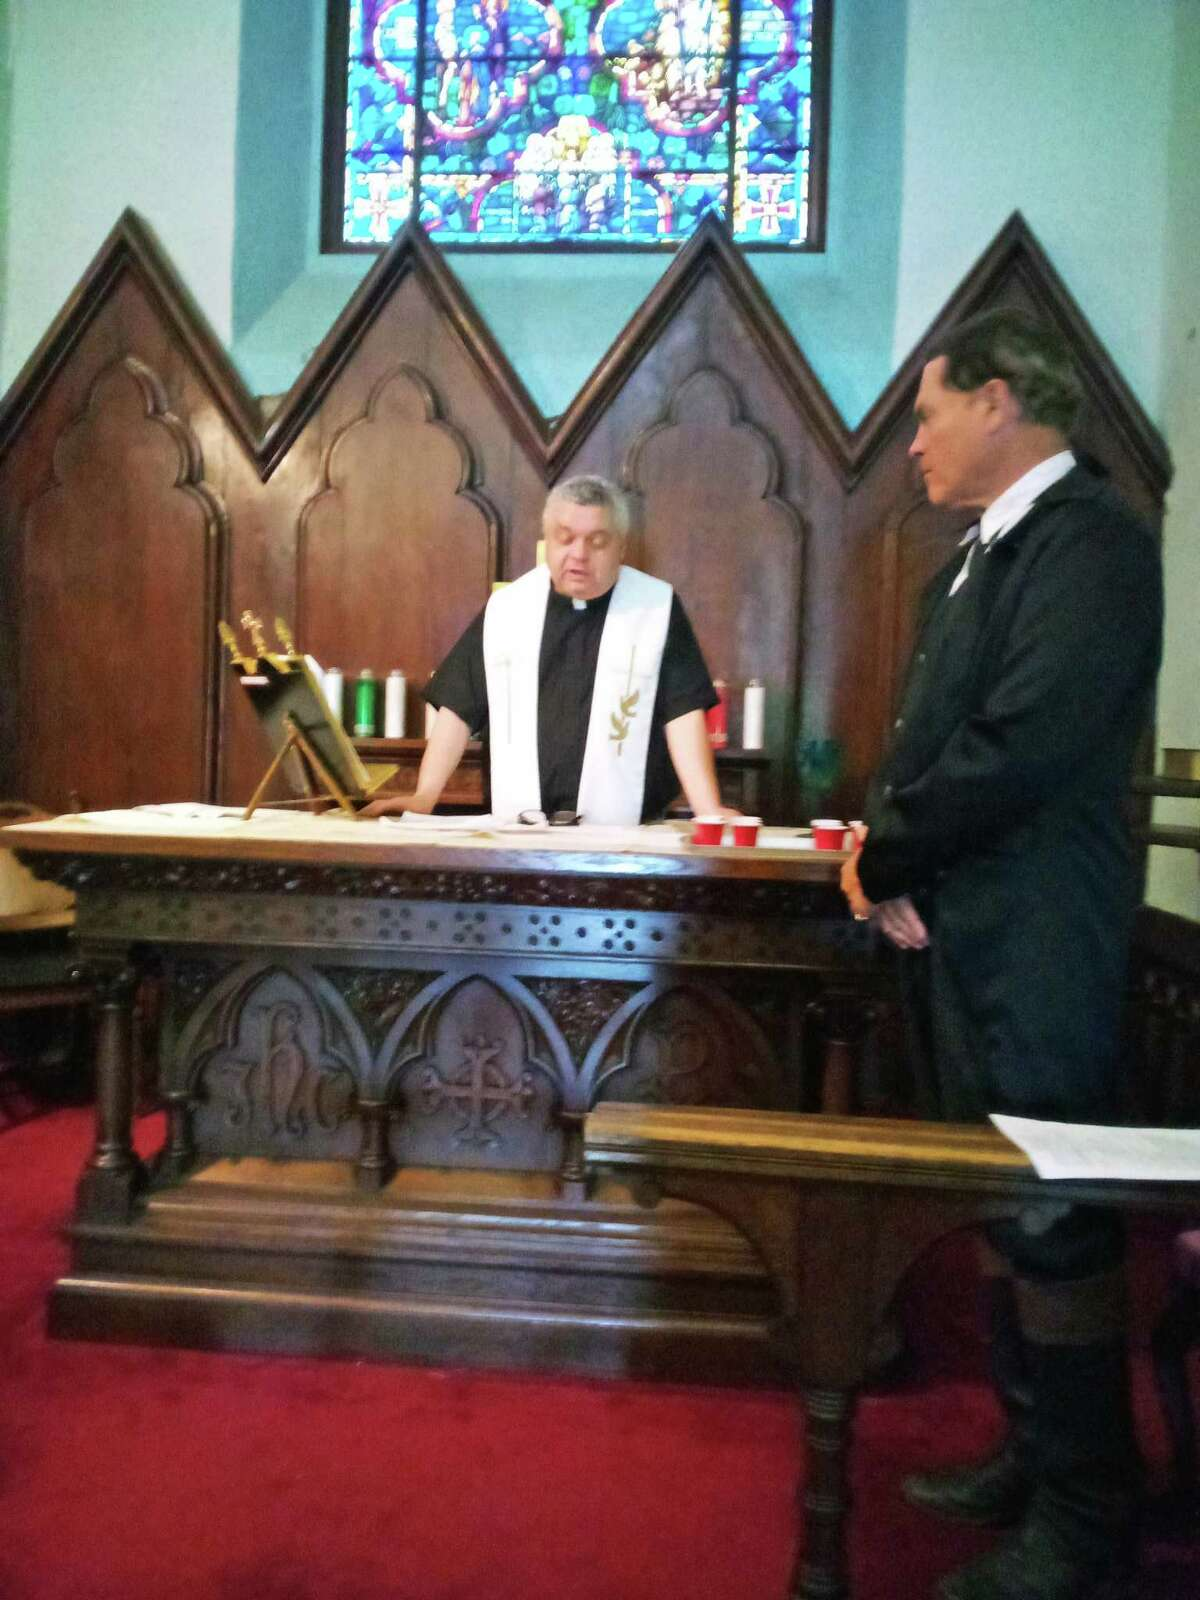 The Rev. Alex Gorecki leads worship at Christ Church in Canaan, with church warden and historic reenactor Kevin Titus.